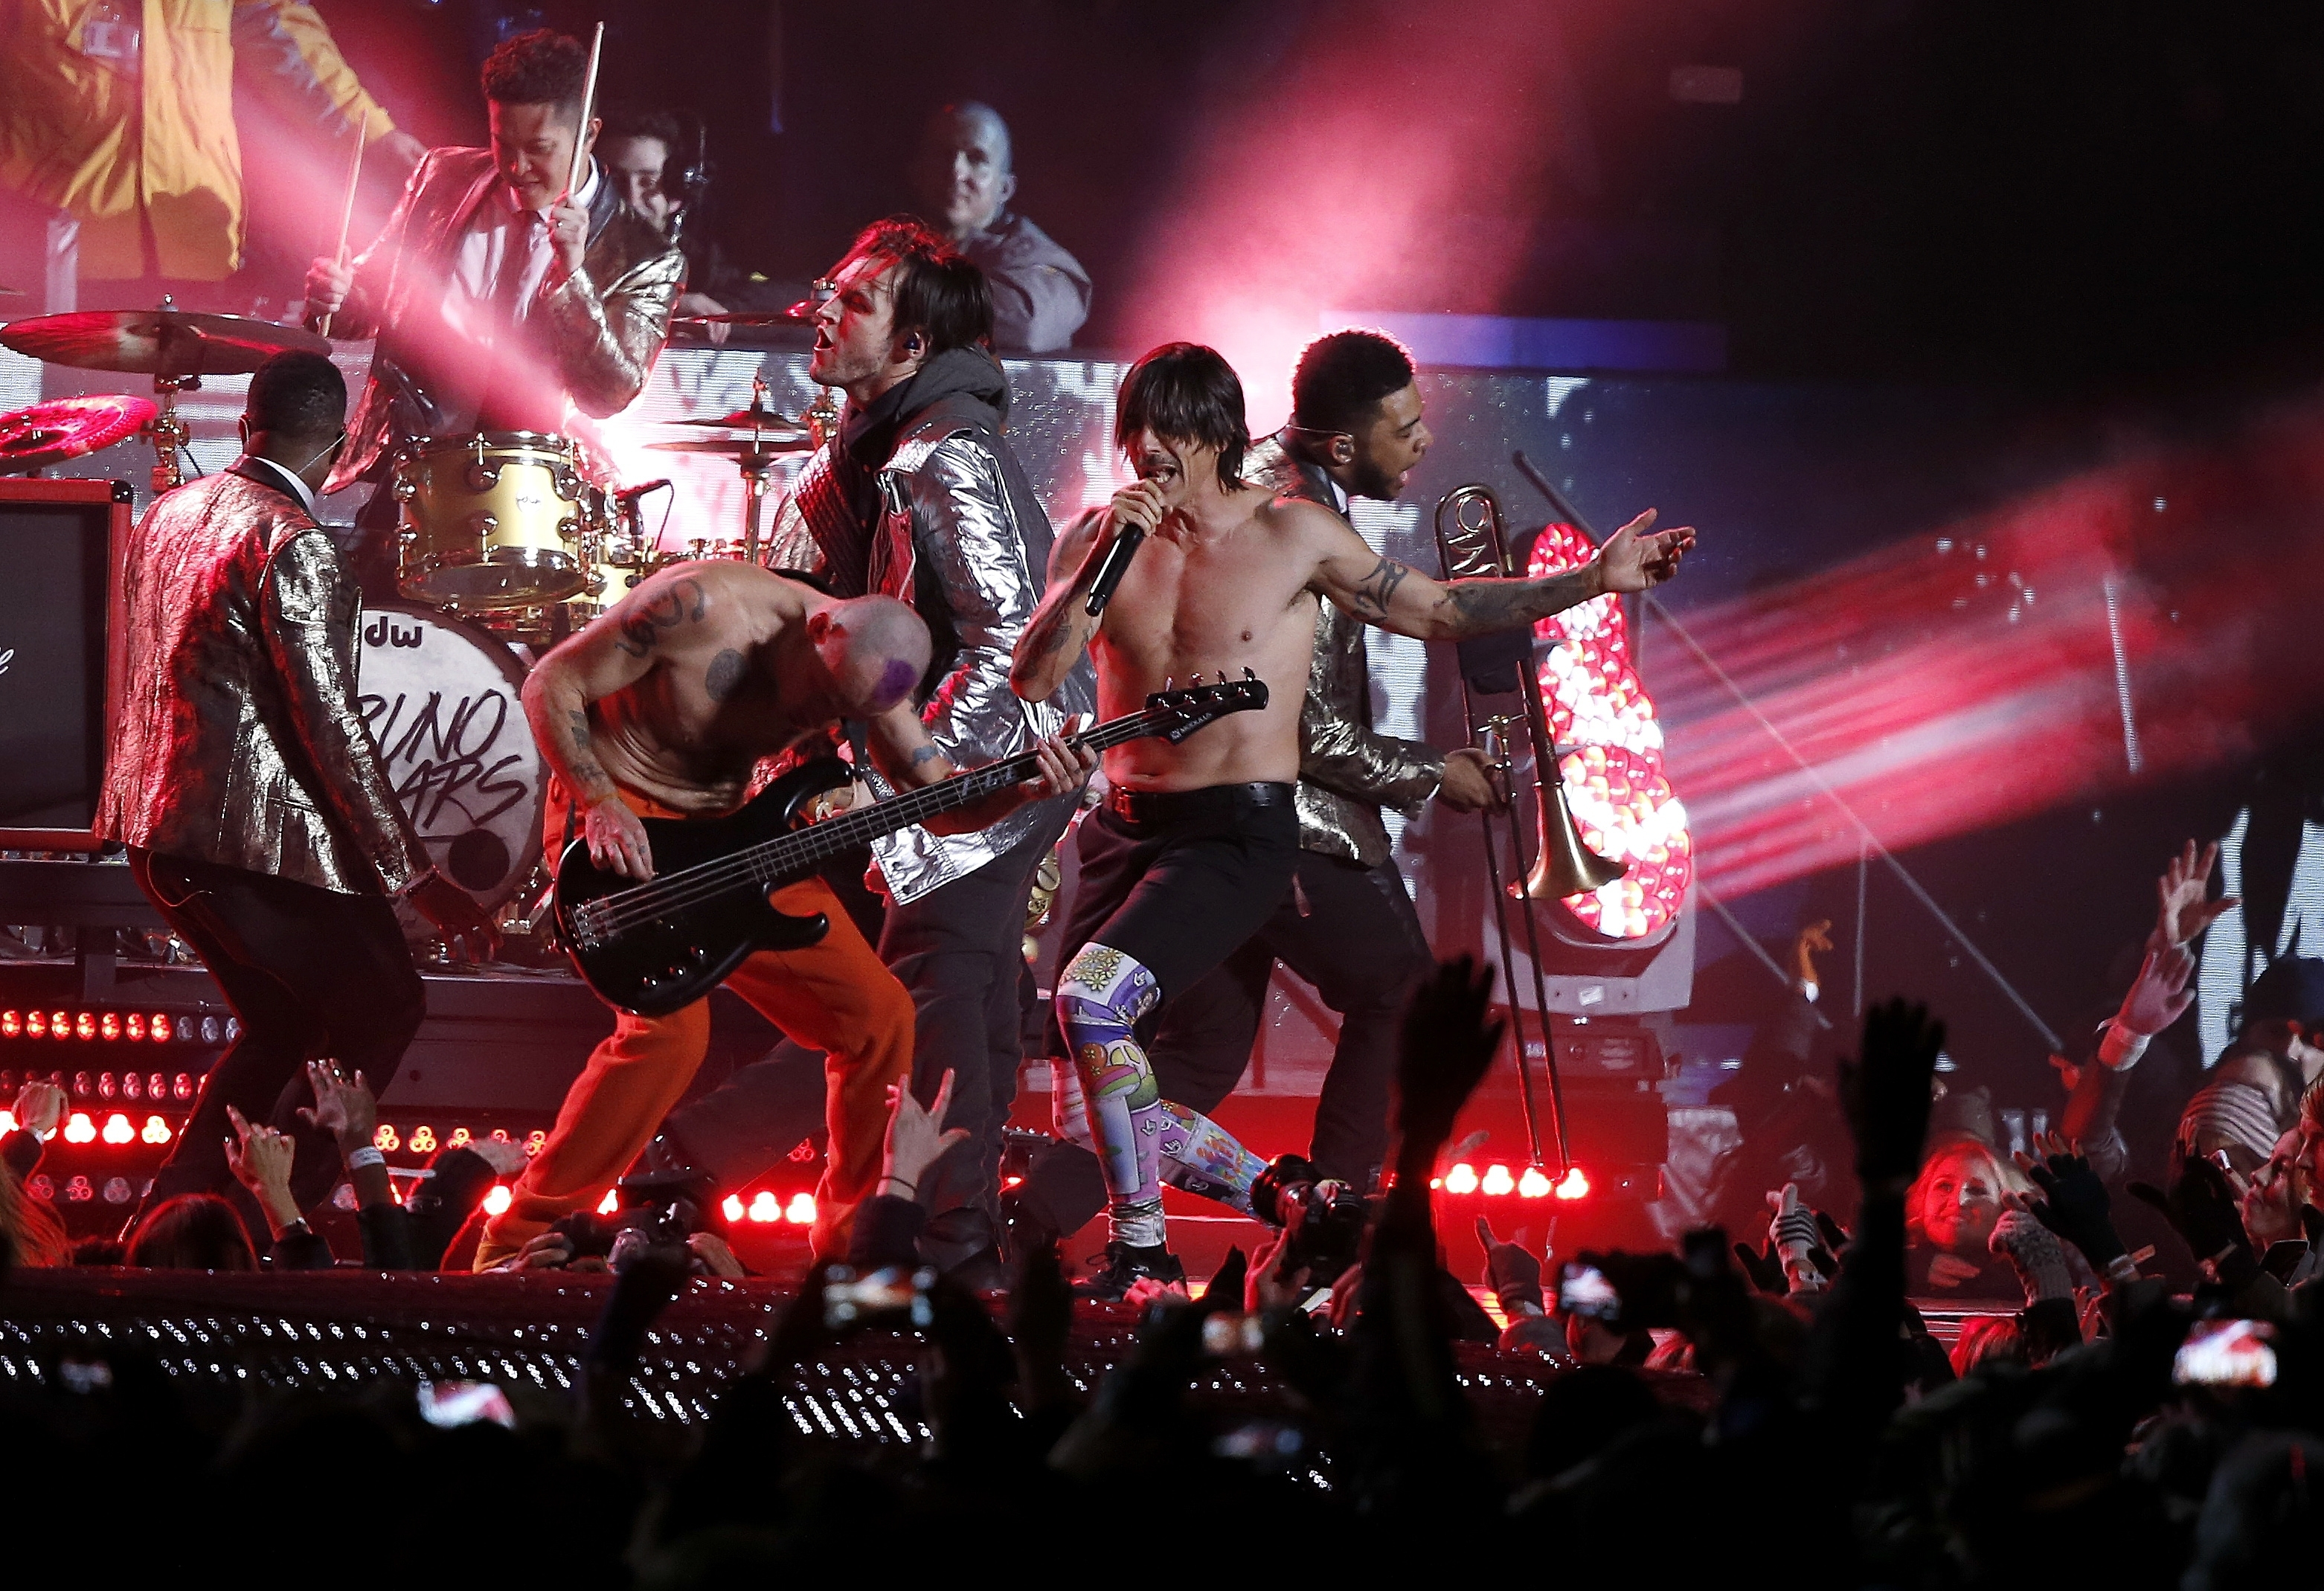 Red Hot Chili Peppers Didn't Play Instruments Live At Super pertaining to Red Hot Chili Peppers Super Bowl